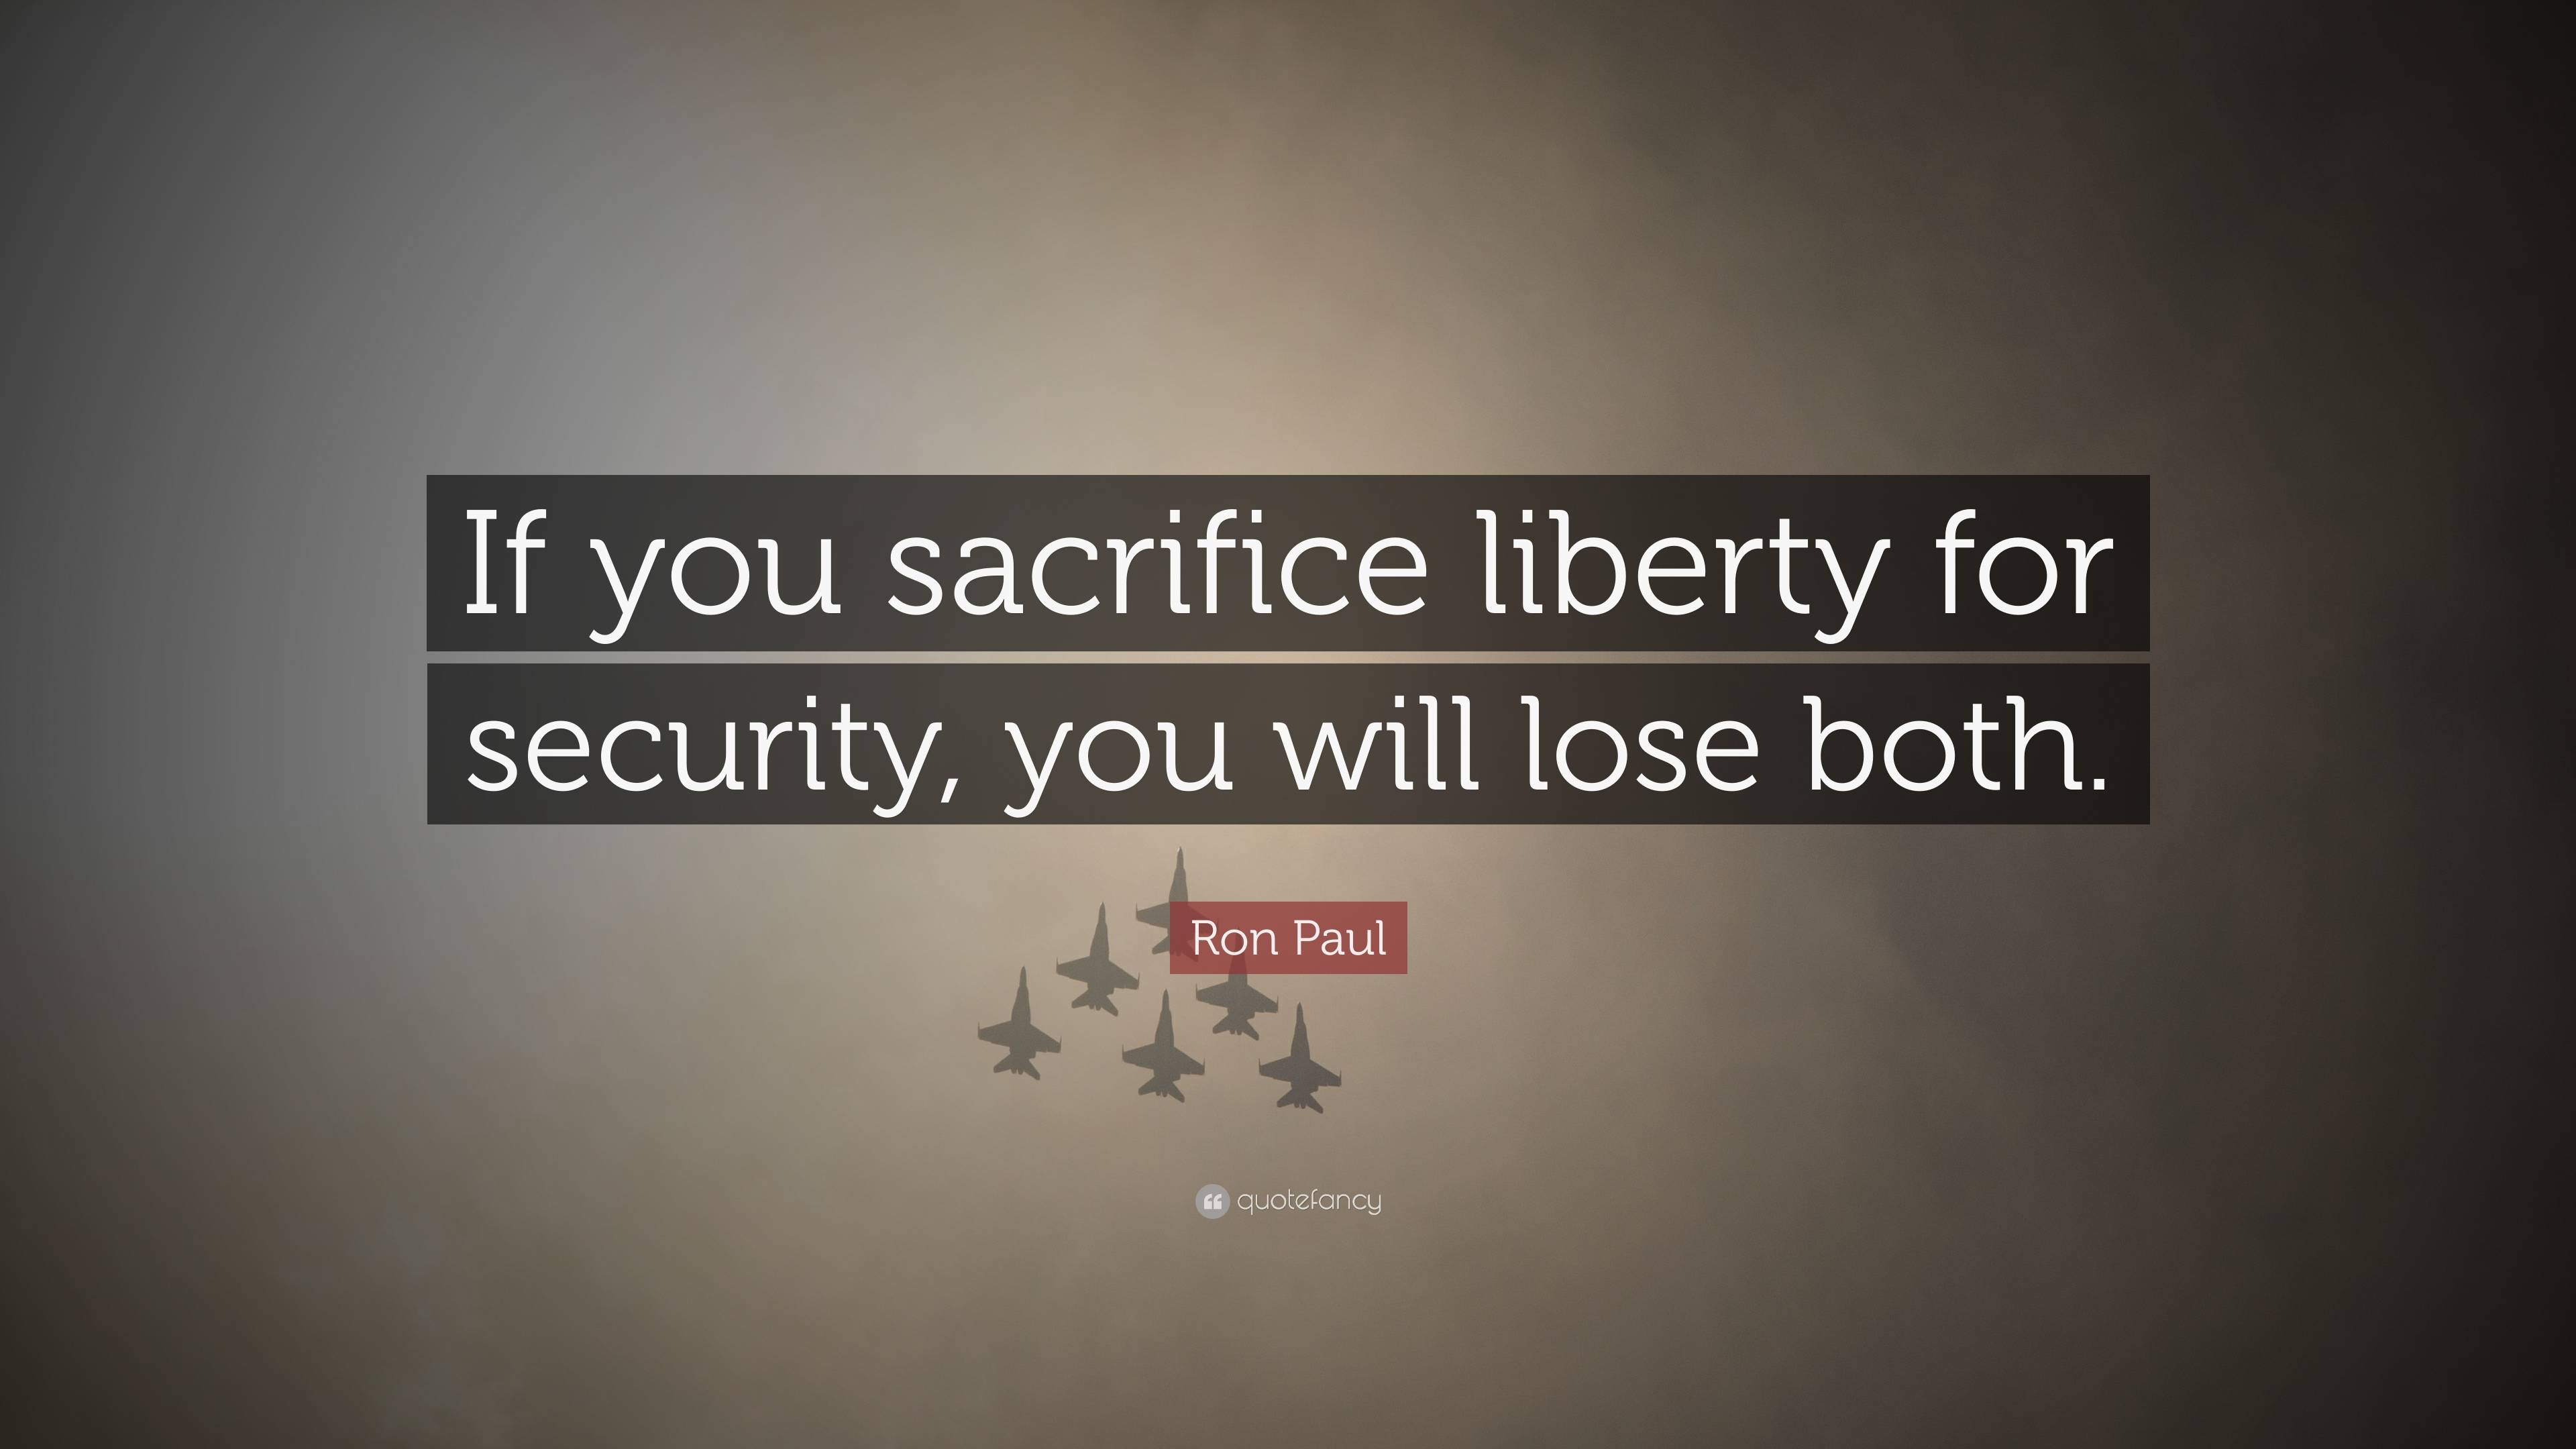 Security Quotes Sacrifice Quotes 40 Wallpapers  Quotefancy